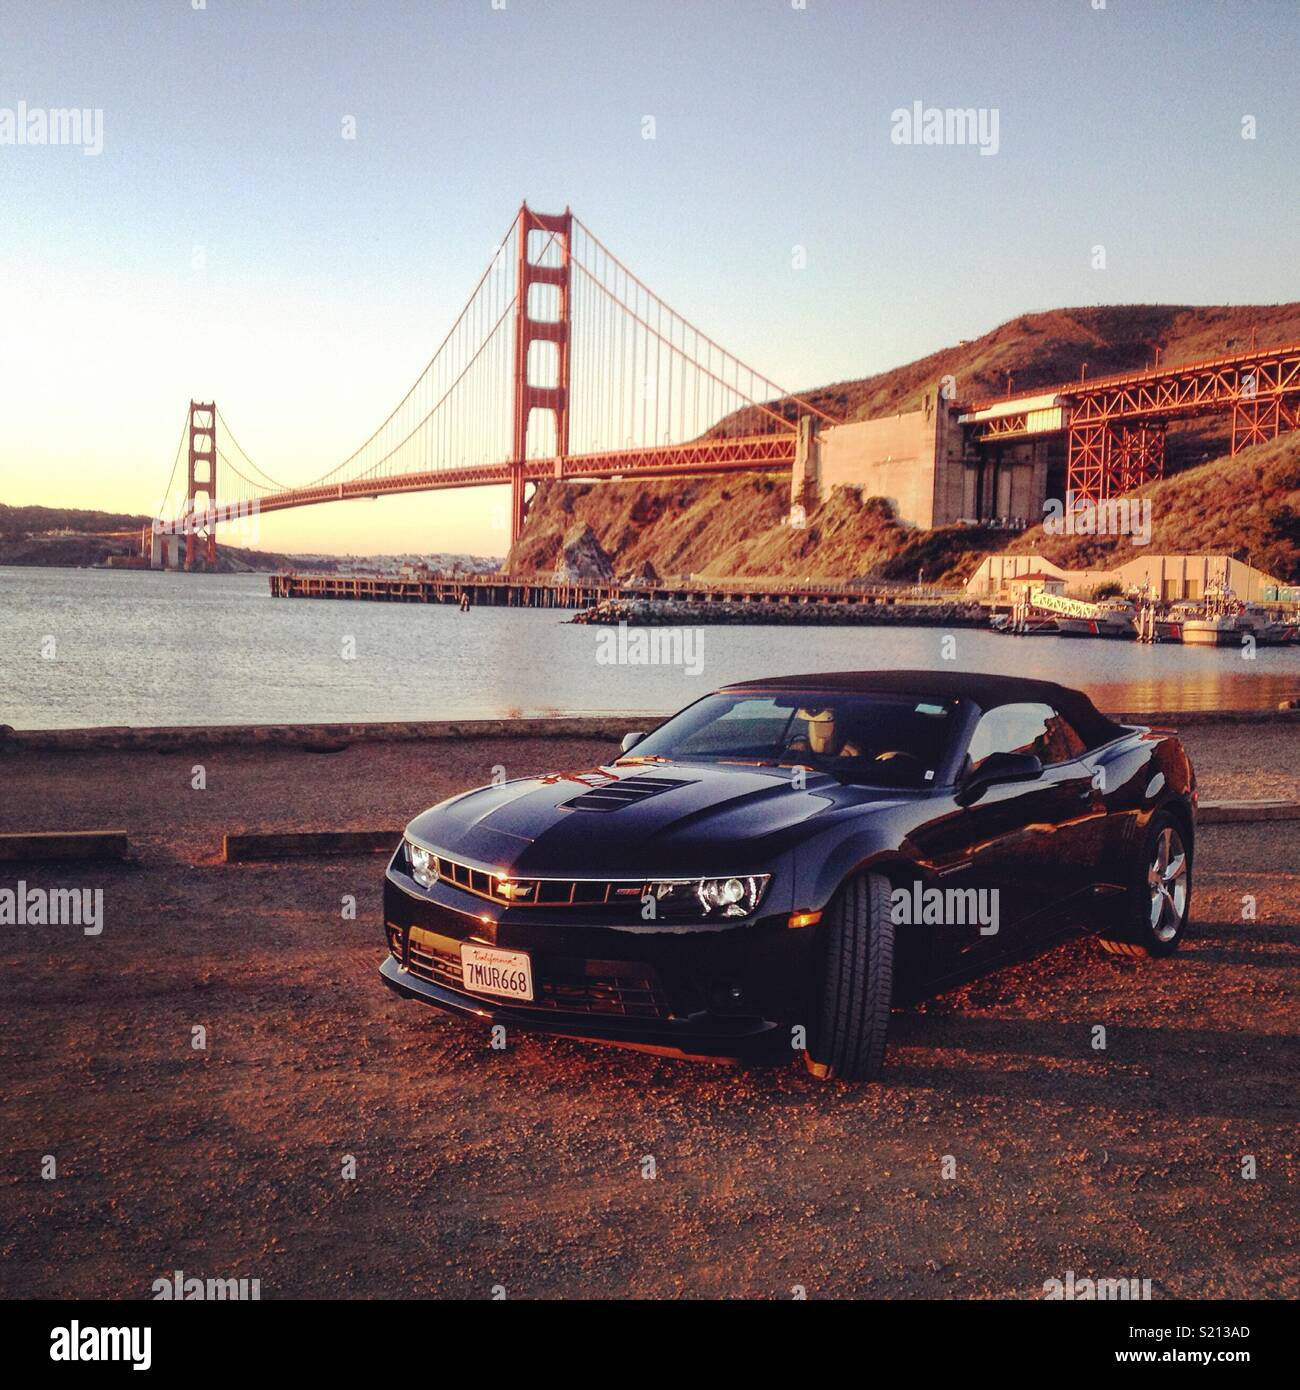 Chevrolet Camaro SS Convertible in front of the Golden Gate Bridge in late November as the sun rises - Stock Image